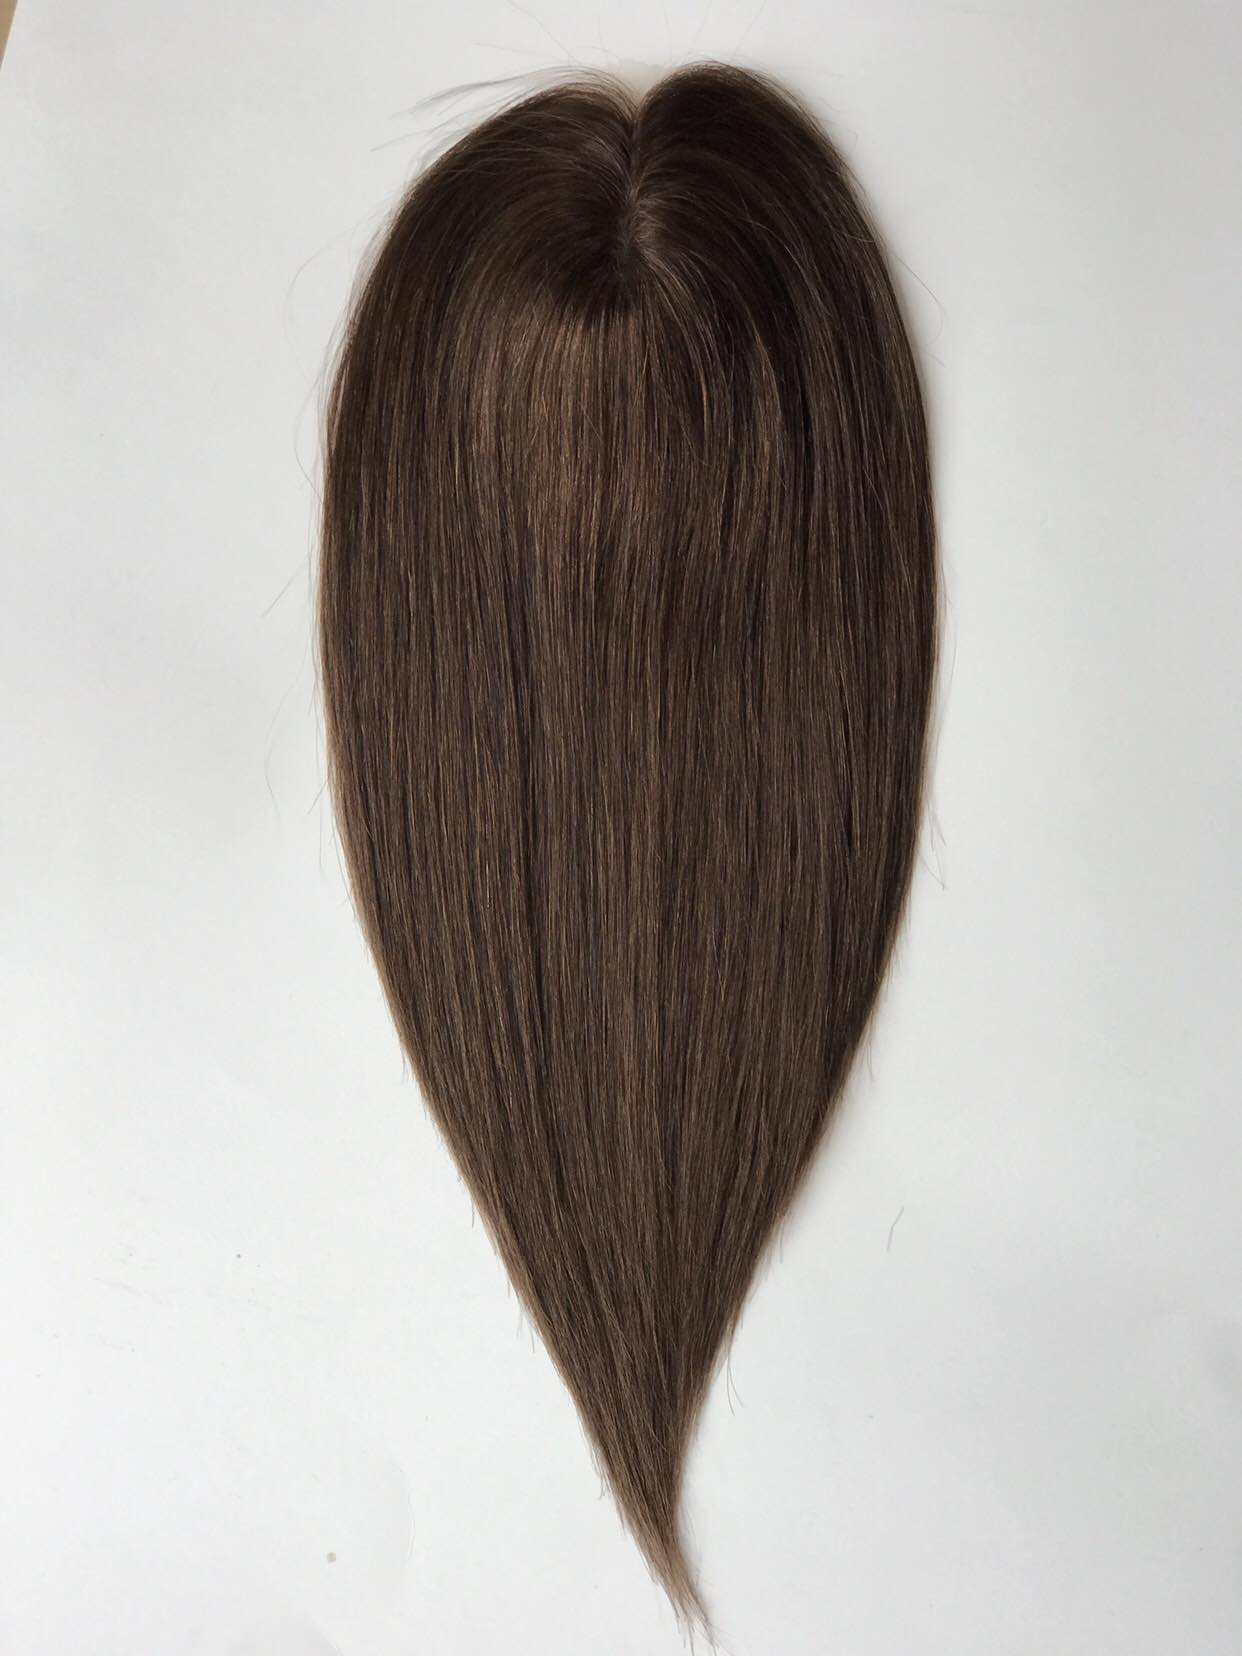 Uniwigs 5.5''×5.5'' Remy Human Hair piece, Lace front and Silk Base Topper, Straight Hairpiece,16 Inches for Hair Loss (G-4)